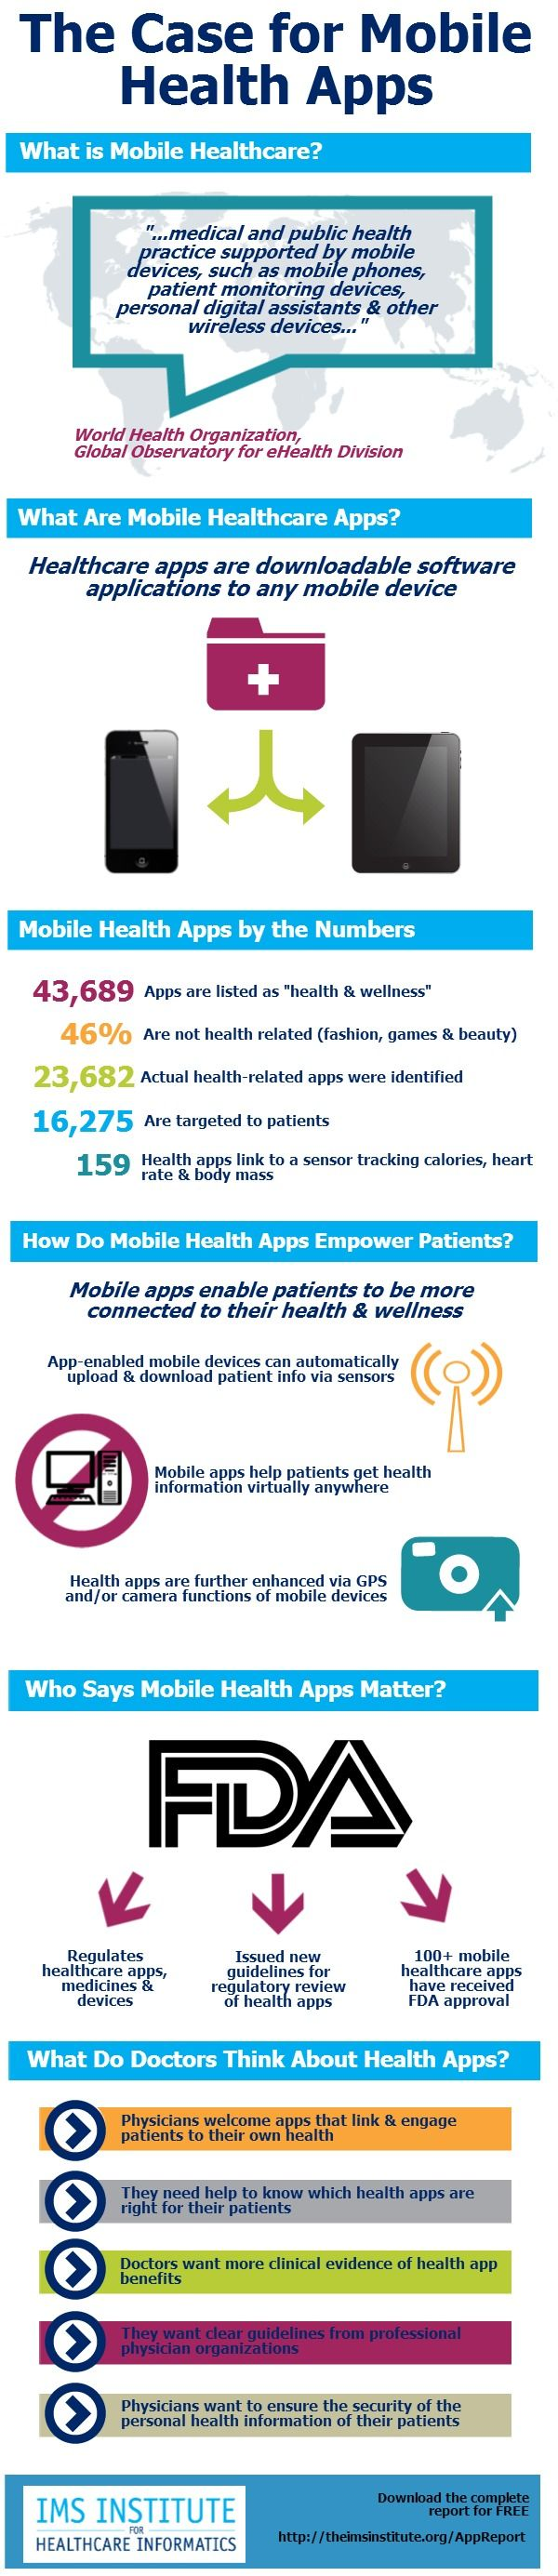 The case for mHealth apps